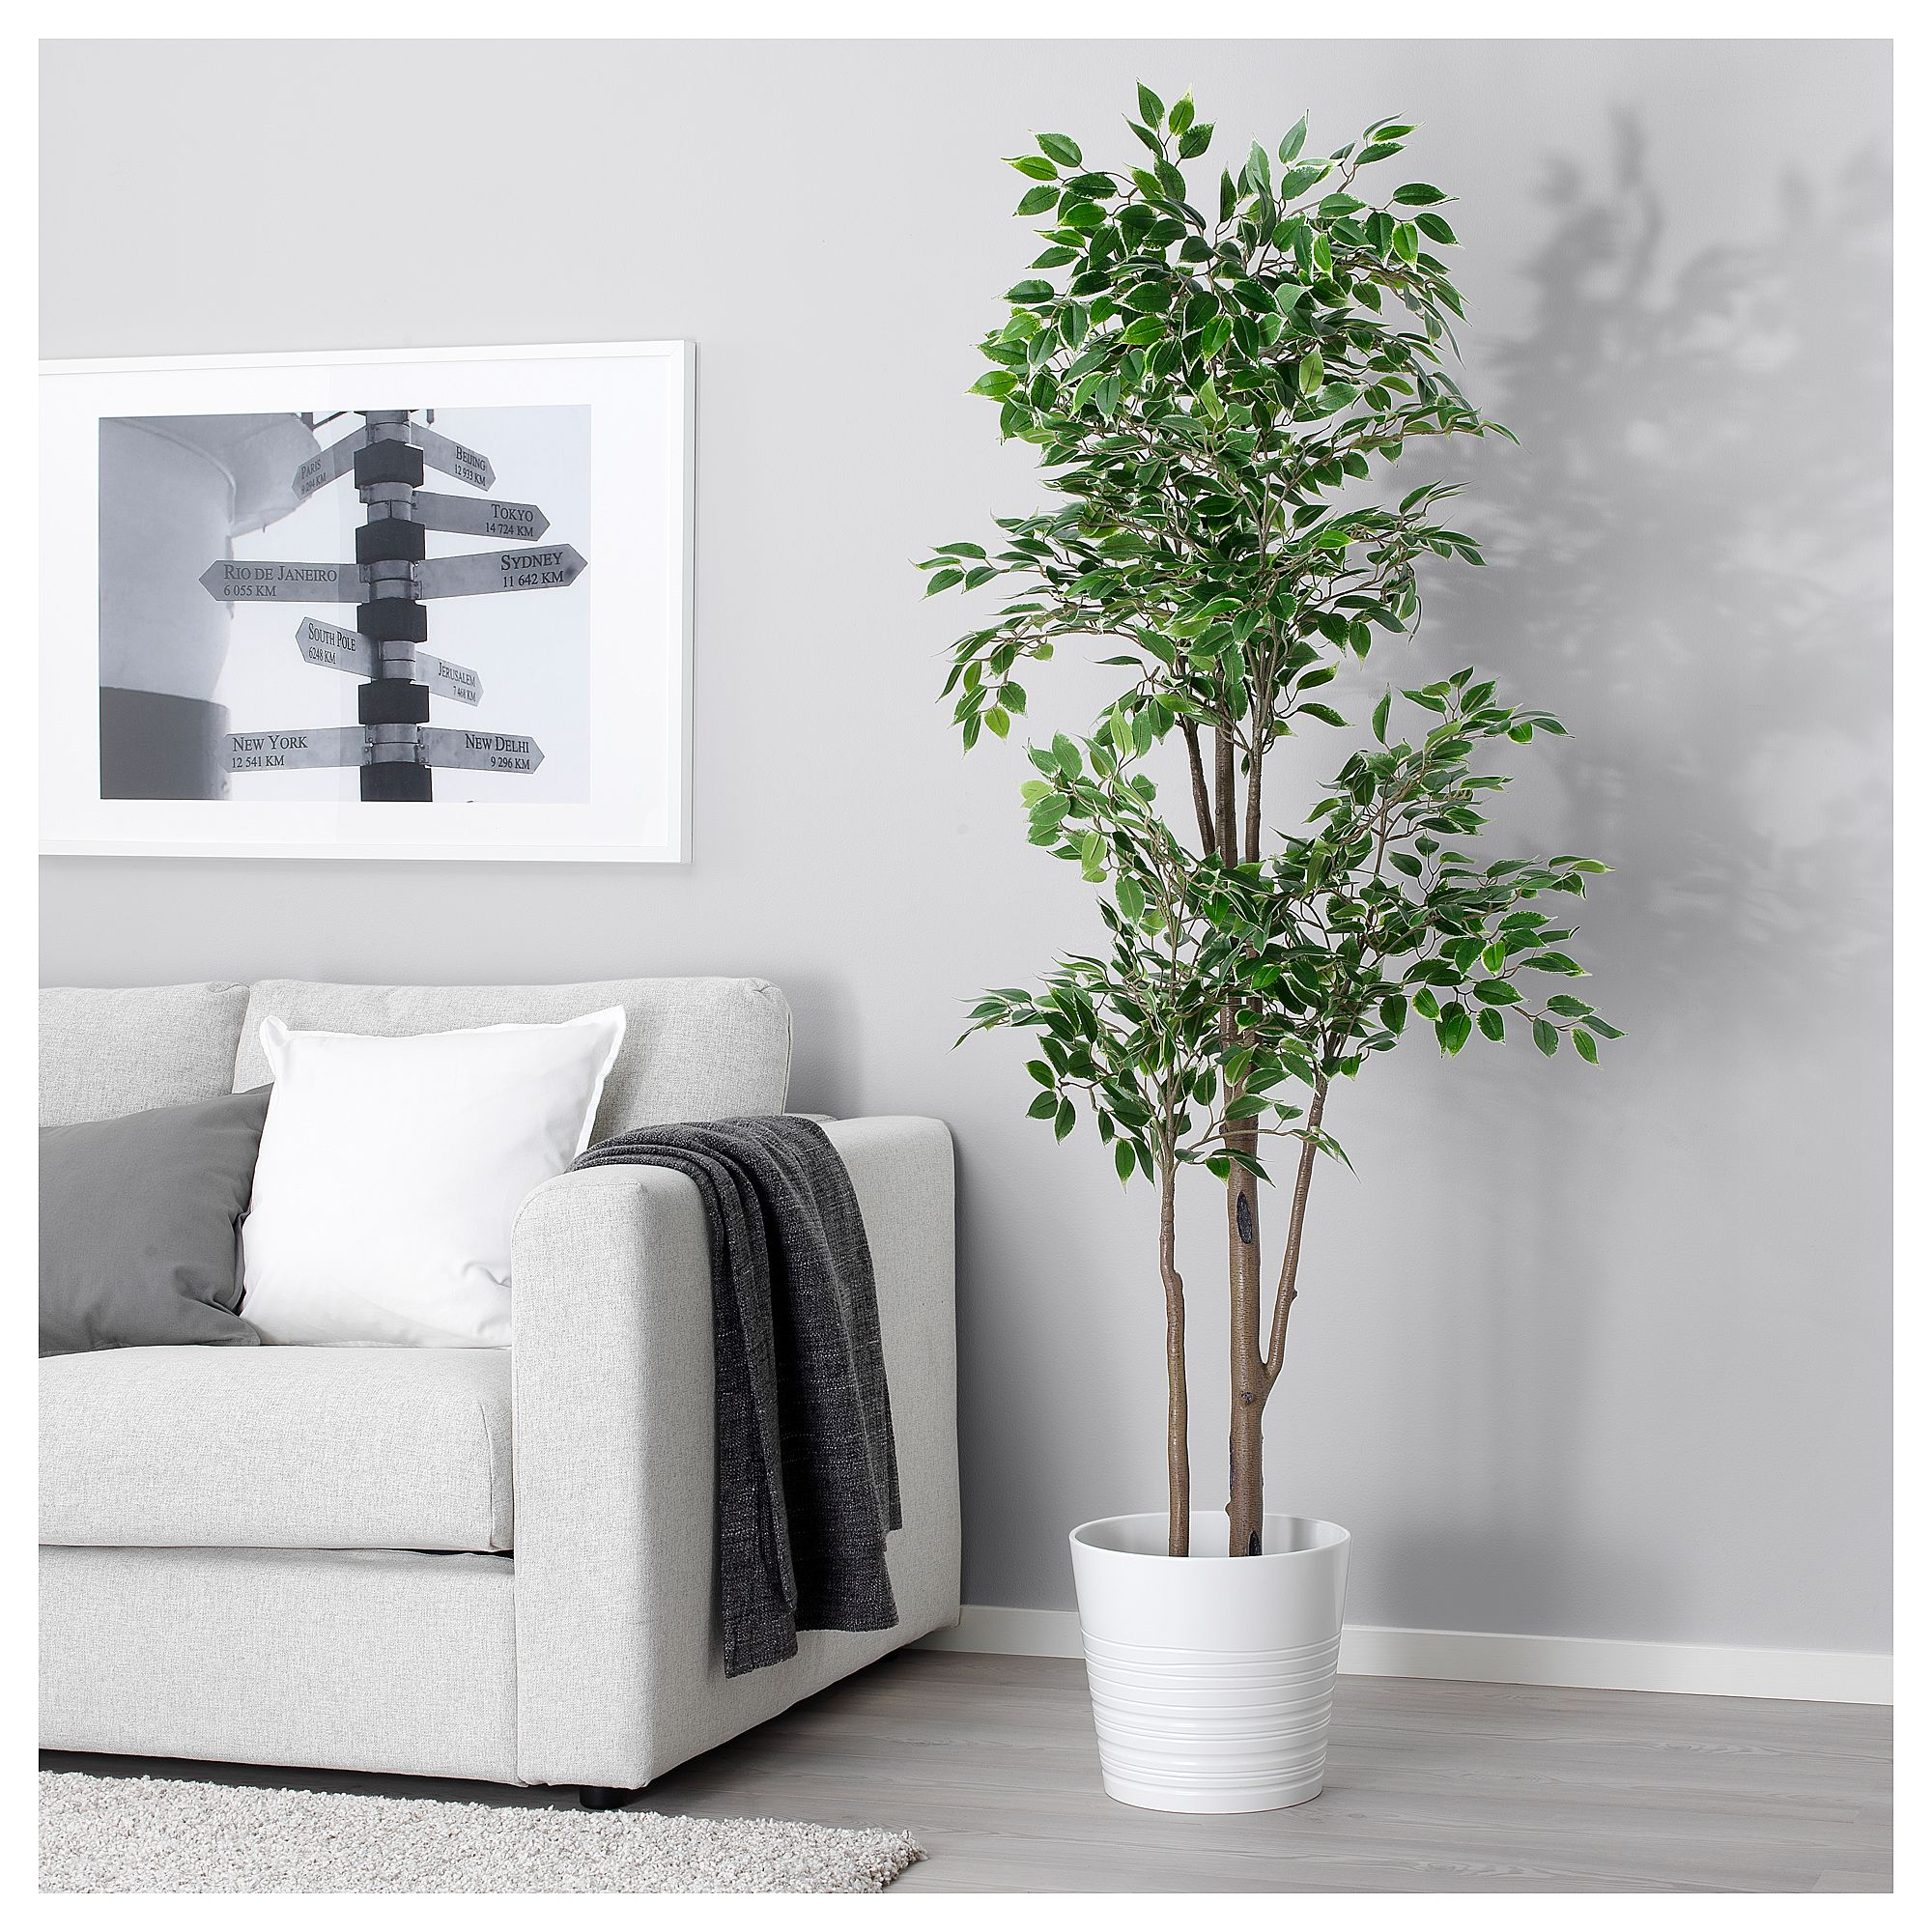 Ikea Fejka Weeping Fig Artificial Potted Plant Cheap Artificial Plants Plant Decor Indoor Artificial Potted Plants